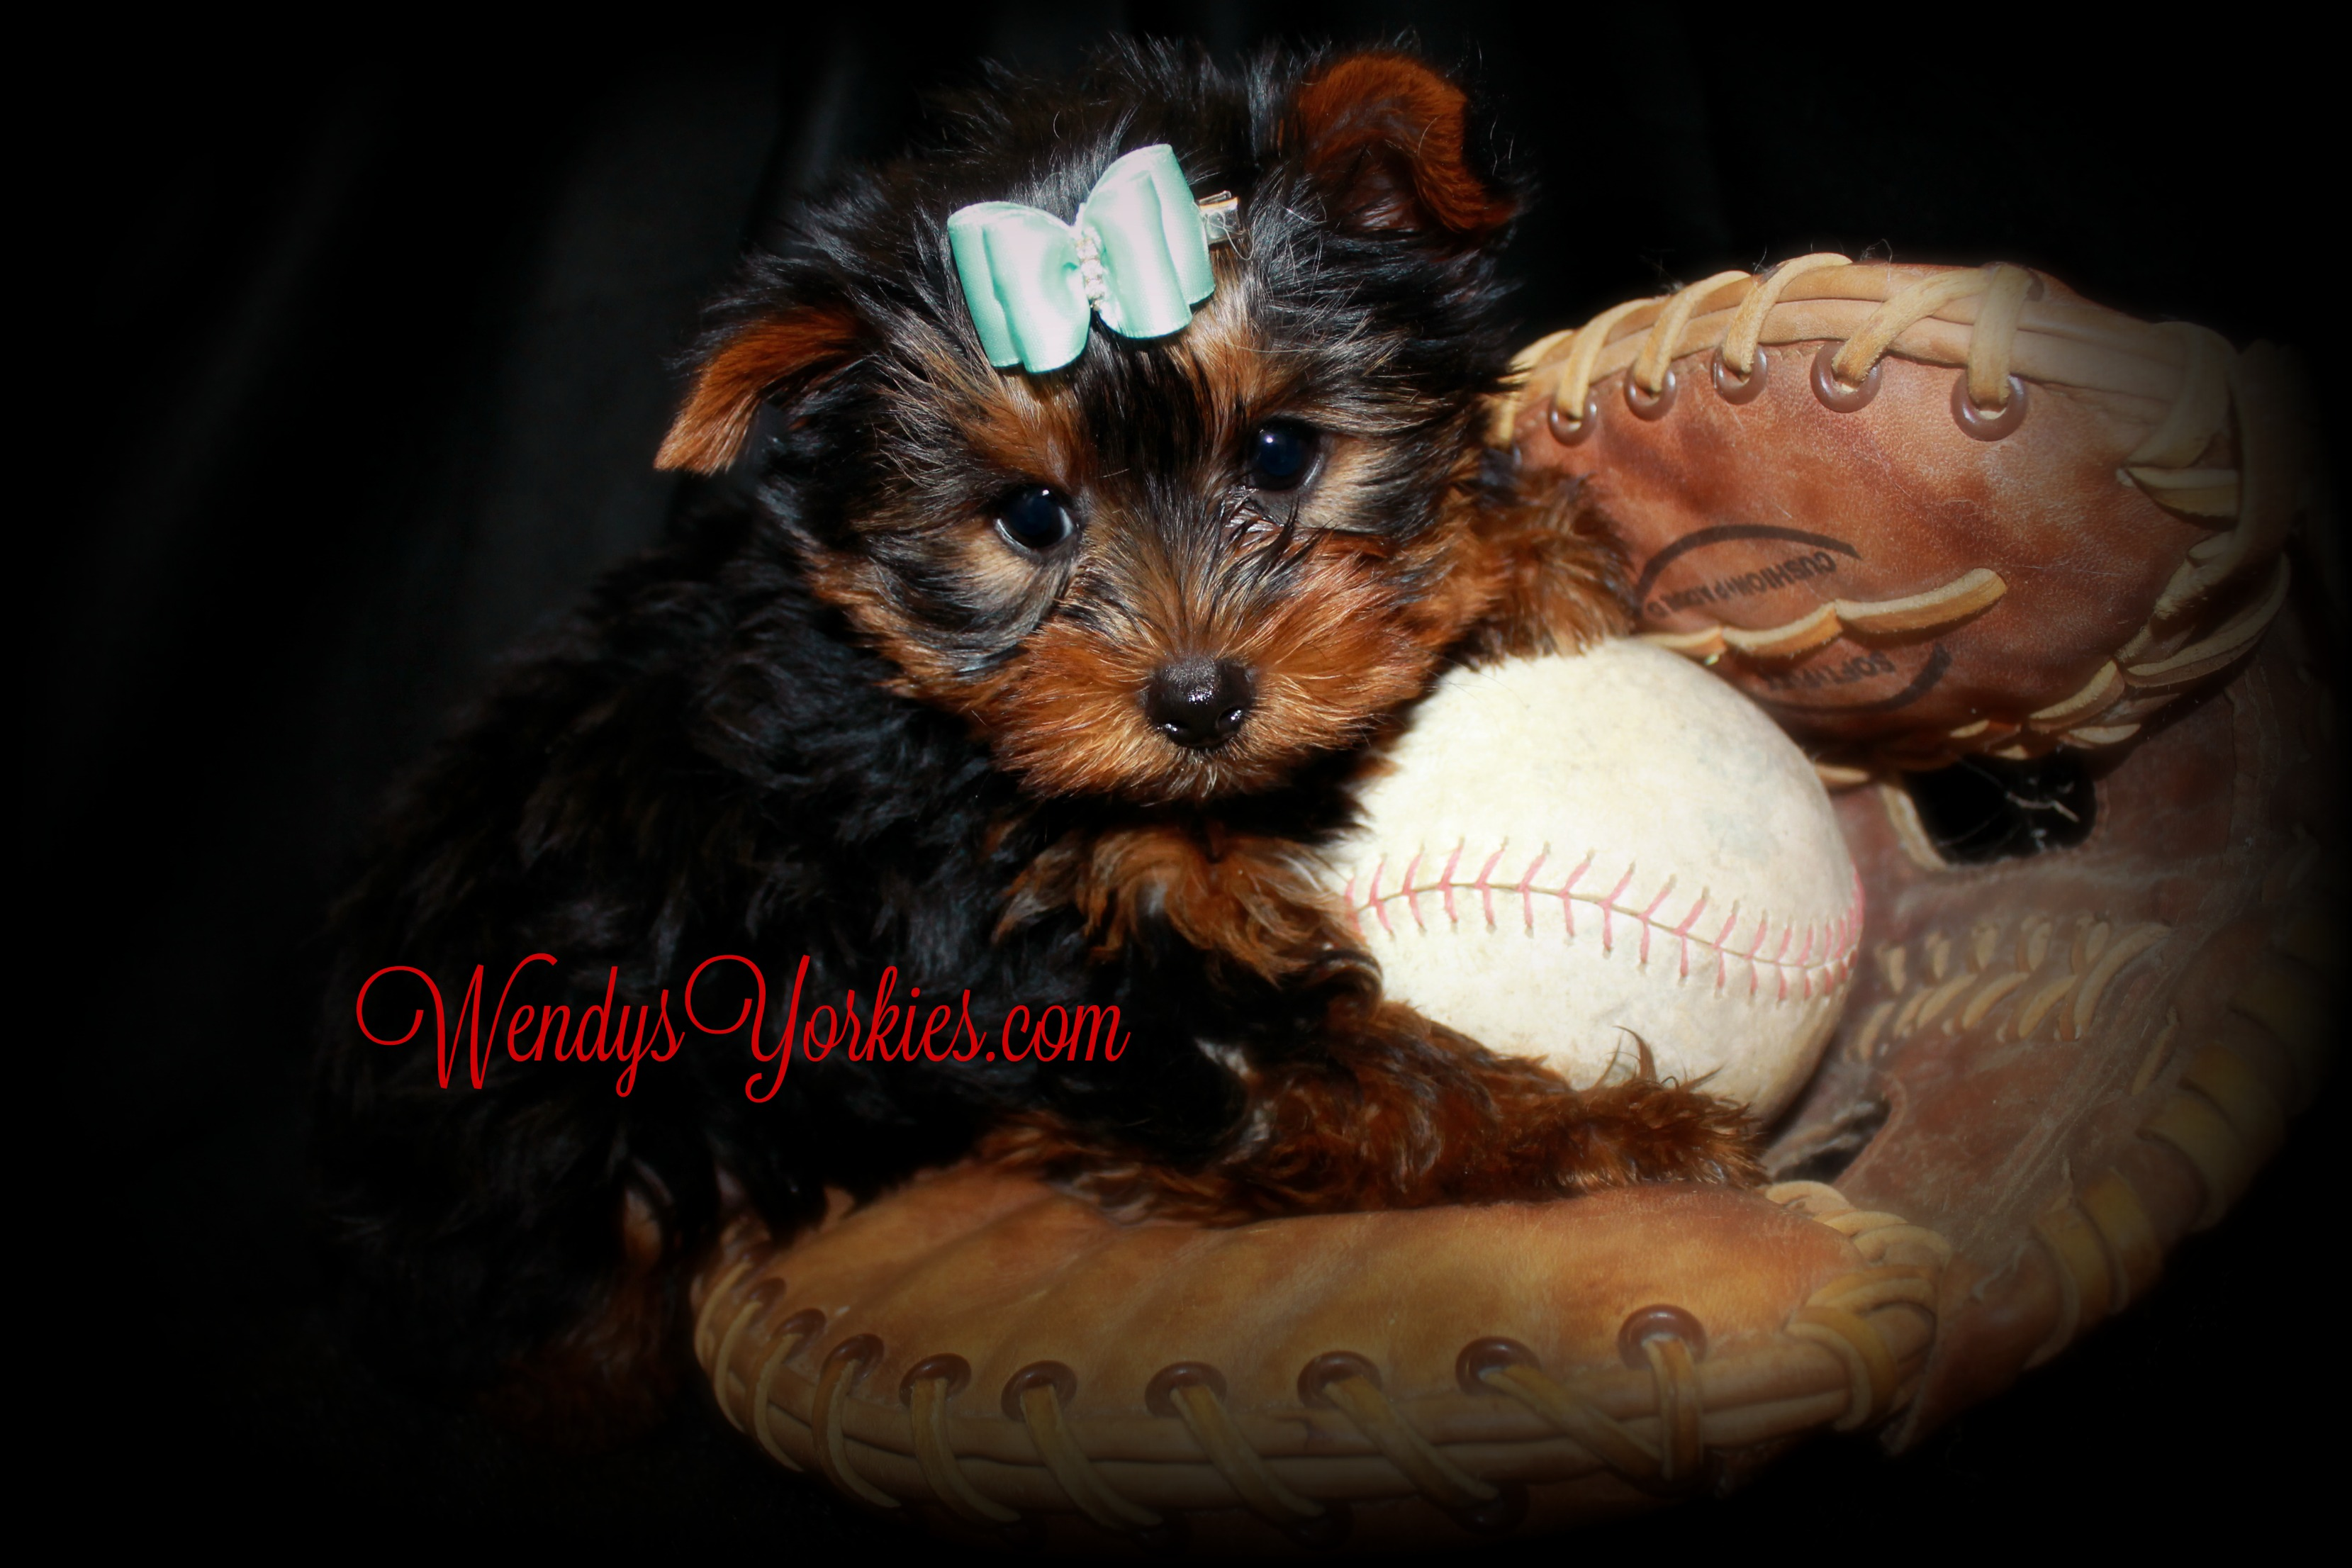 TEacup Yorkie puppy for sale, WendysYorkies.com, Chloe m1